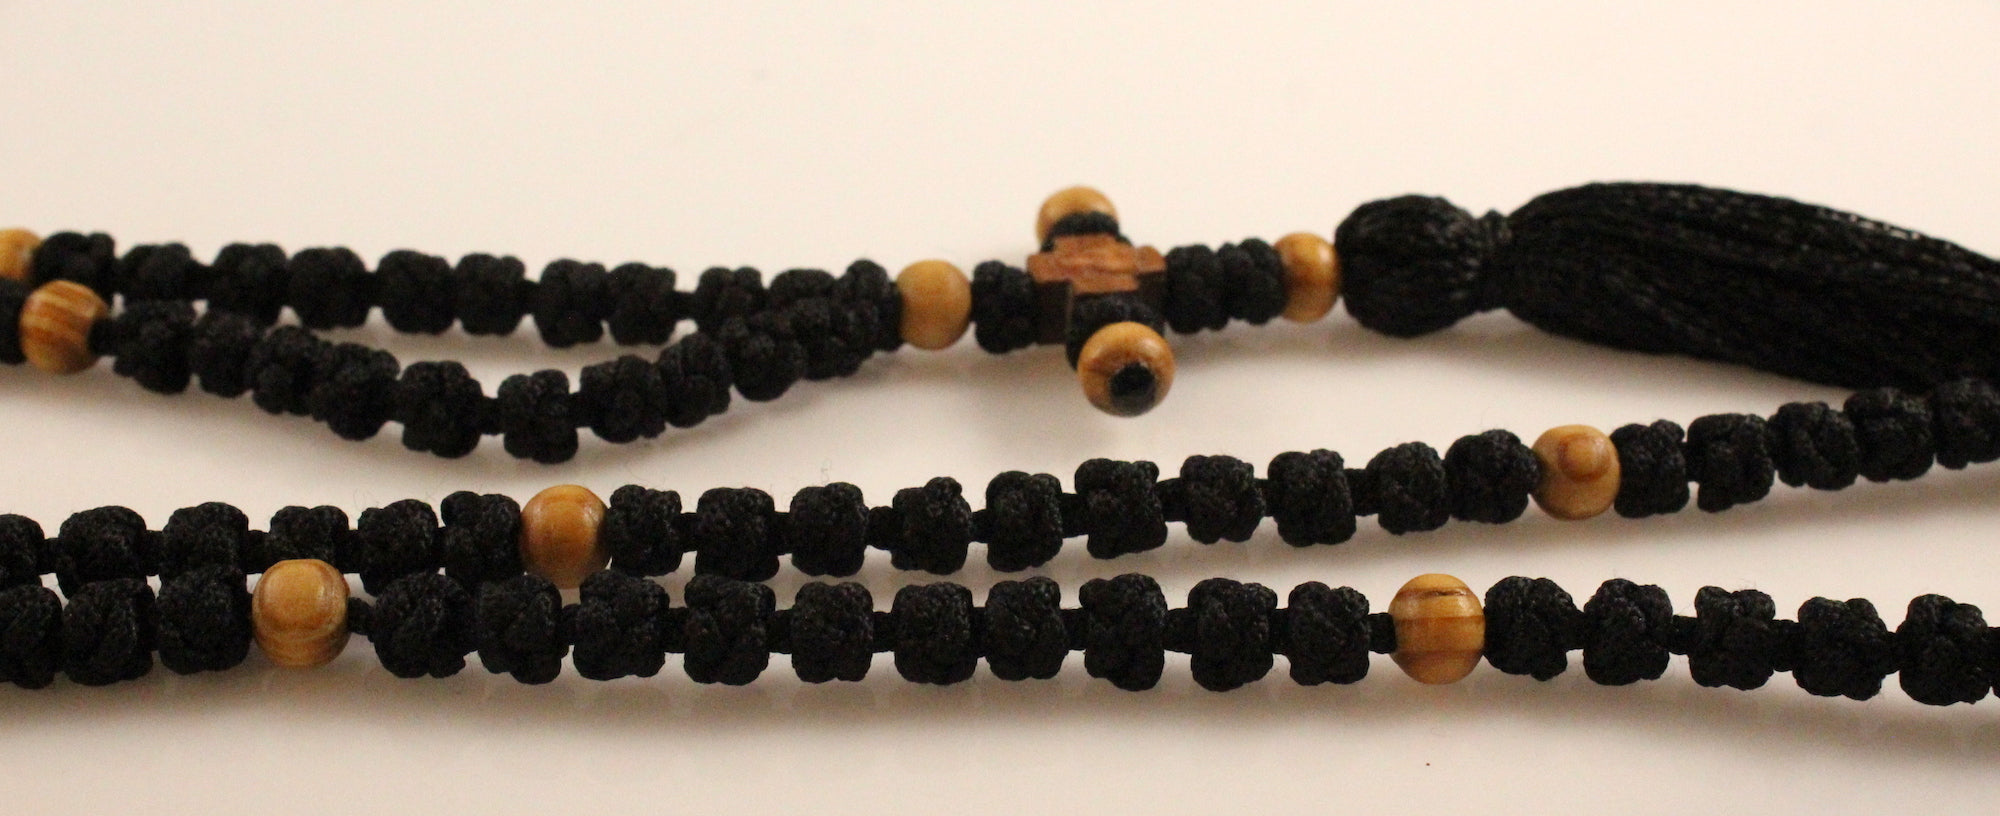 Orthodox Prayer Rope Black Color with 100 Knots and Wooden Beads